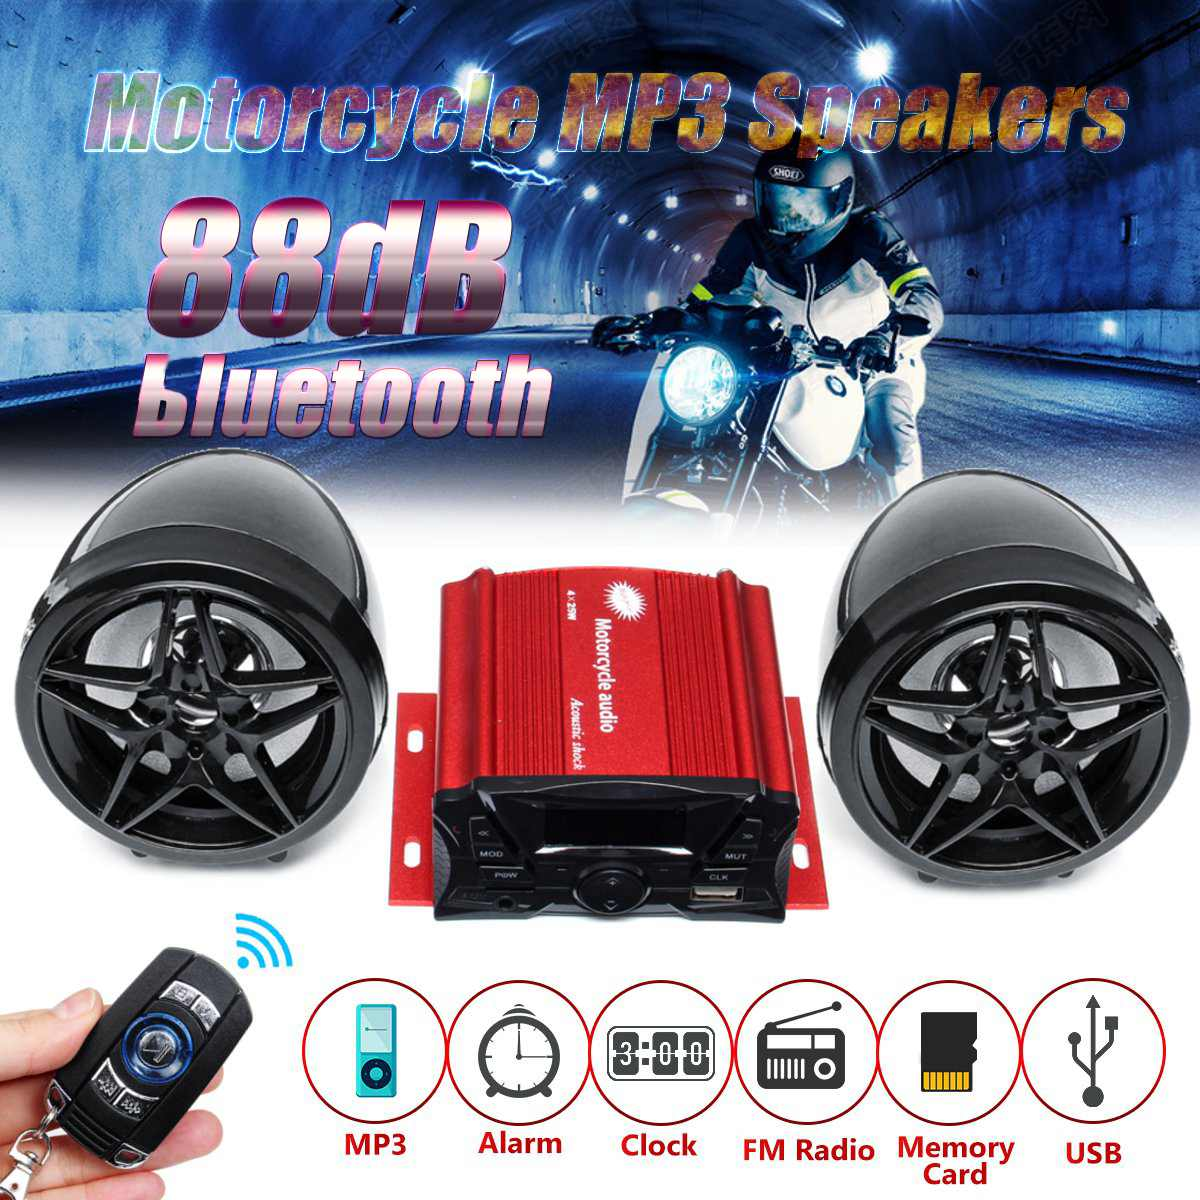 Motorcycle bluetooth Audio Sound System Stereo Speakers FM Radio MP3 Music Player Scooter ATV Remote Control Alarm Speaker|Motorcycle Audio| |  - title=